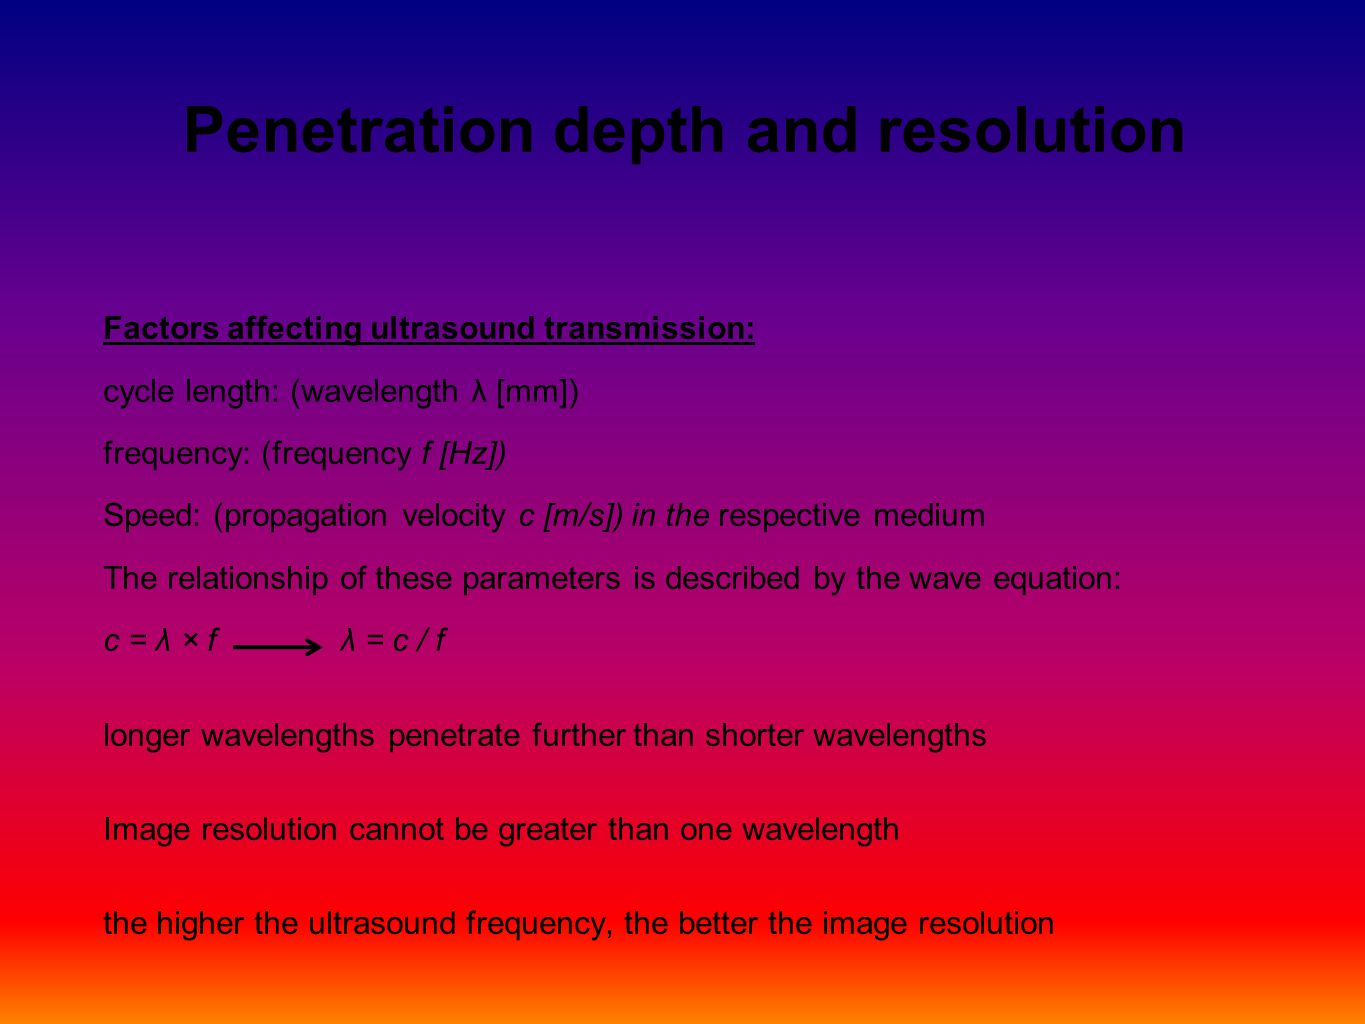 Penetration depth and resolution Factors affecting ultrasound transmission: cycle length: (wavelength λ [mm]) frequency: (frequency f [Hz]) Speed: (propagation velocity c [m/s]) in the respective medium The relationship of these parameters is described by the wave equation: c = λ × f λ = c / f longer wavelengths penetrate further than shorter wavelengths Image resolution cannot be greater than one wavelength the higher the ultrasound frequency, the better the image resolution